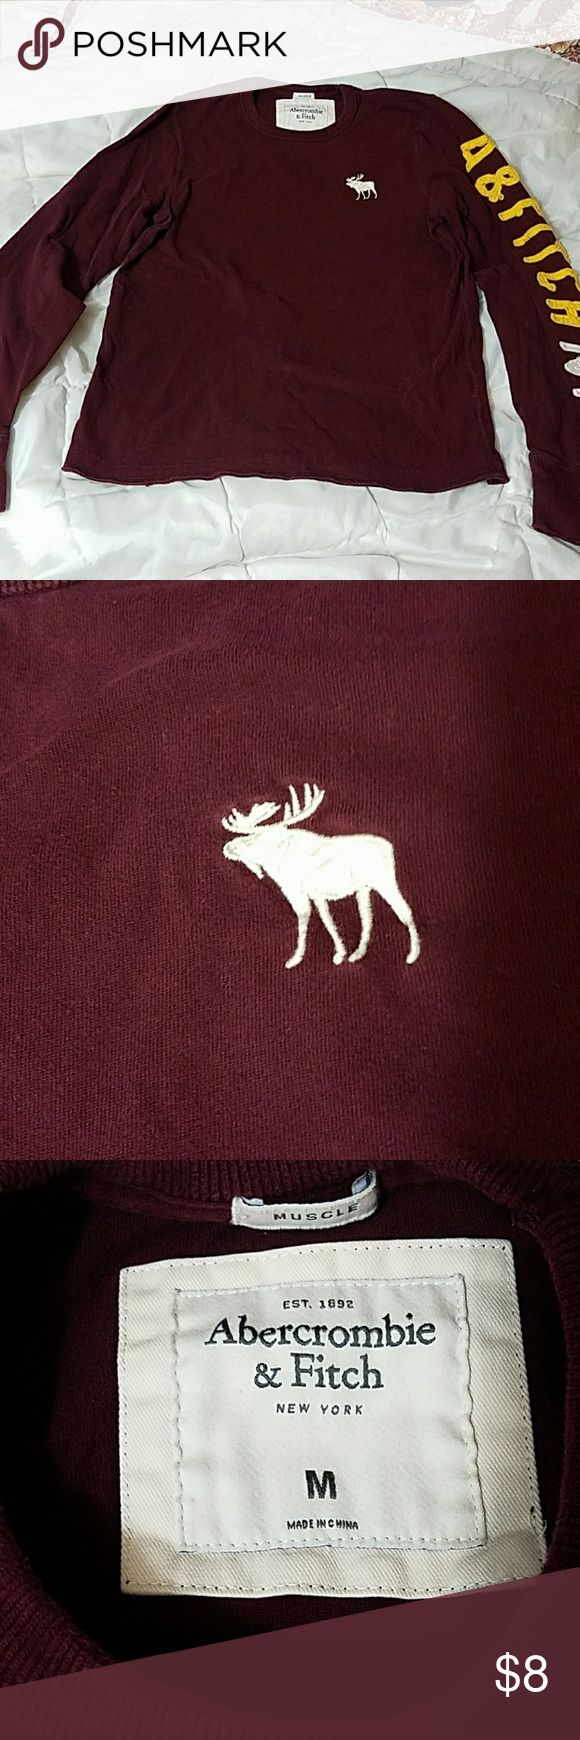 Men's Abercrombie and Fitch t-shirt Men's Abercrombie and Fitch long sleeve t-shirt, burgundy in color, comes from smoke free home Abercrombie & Fitch Shirts Tees - Long Sleeve